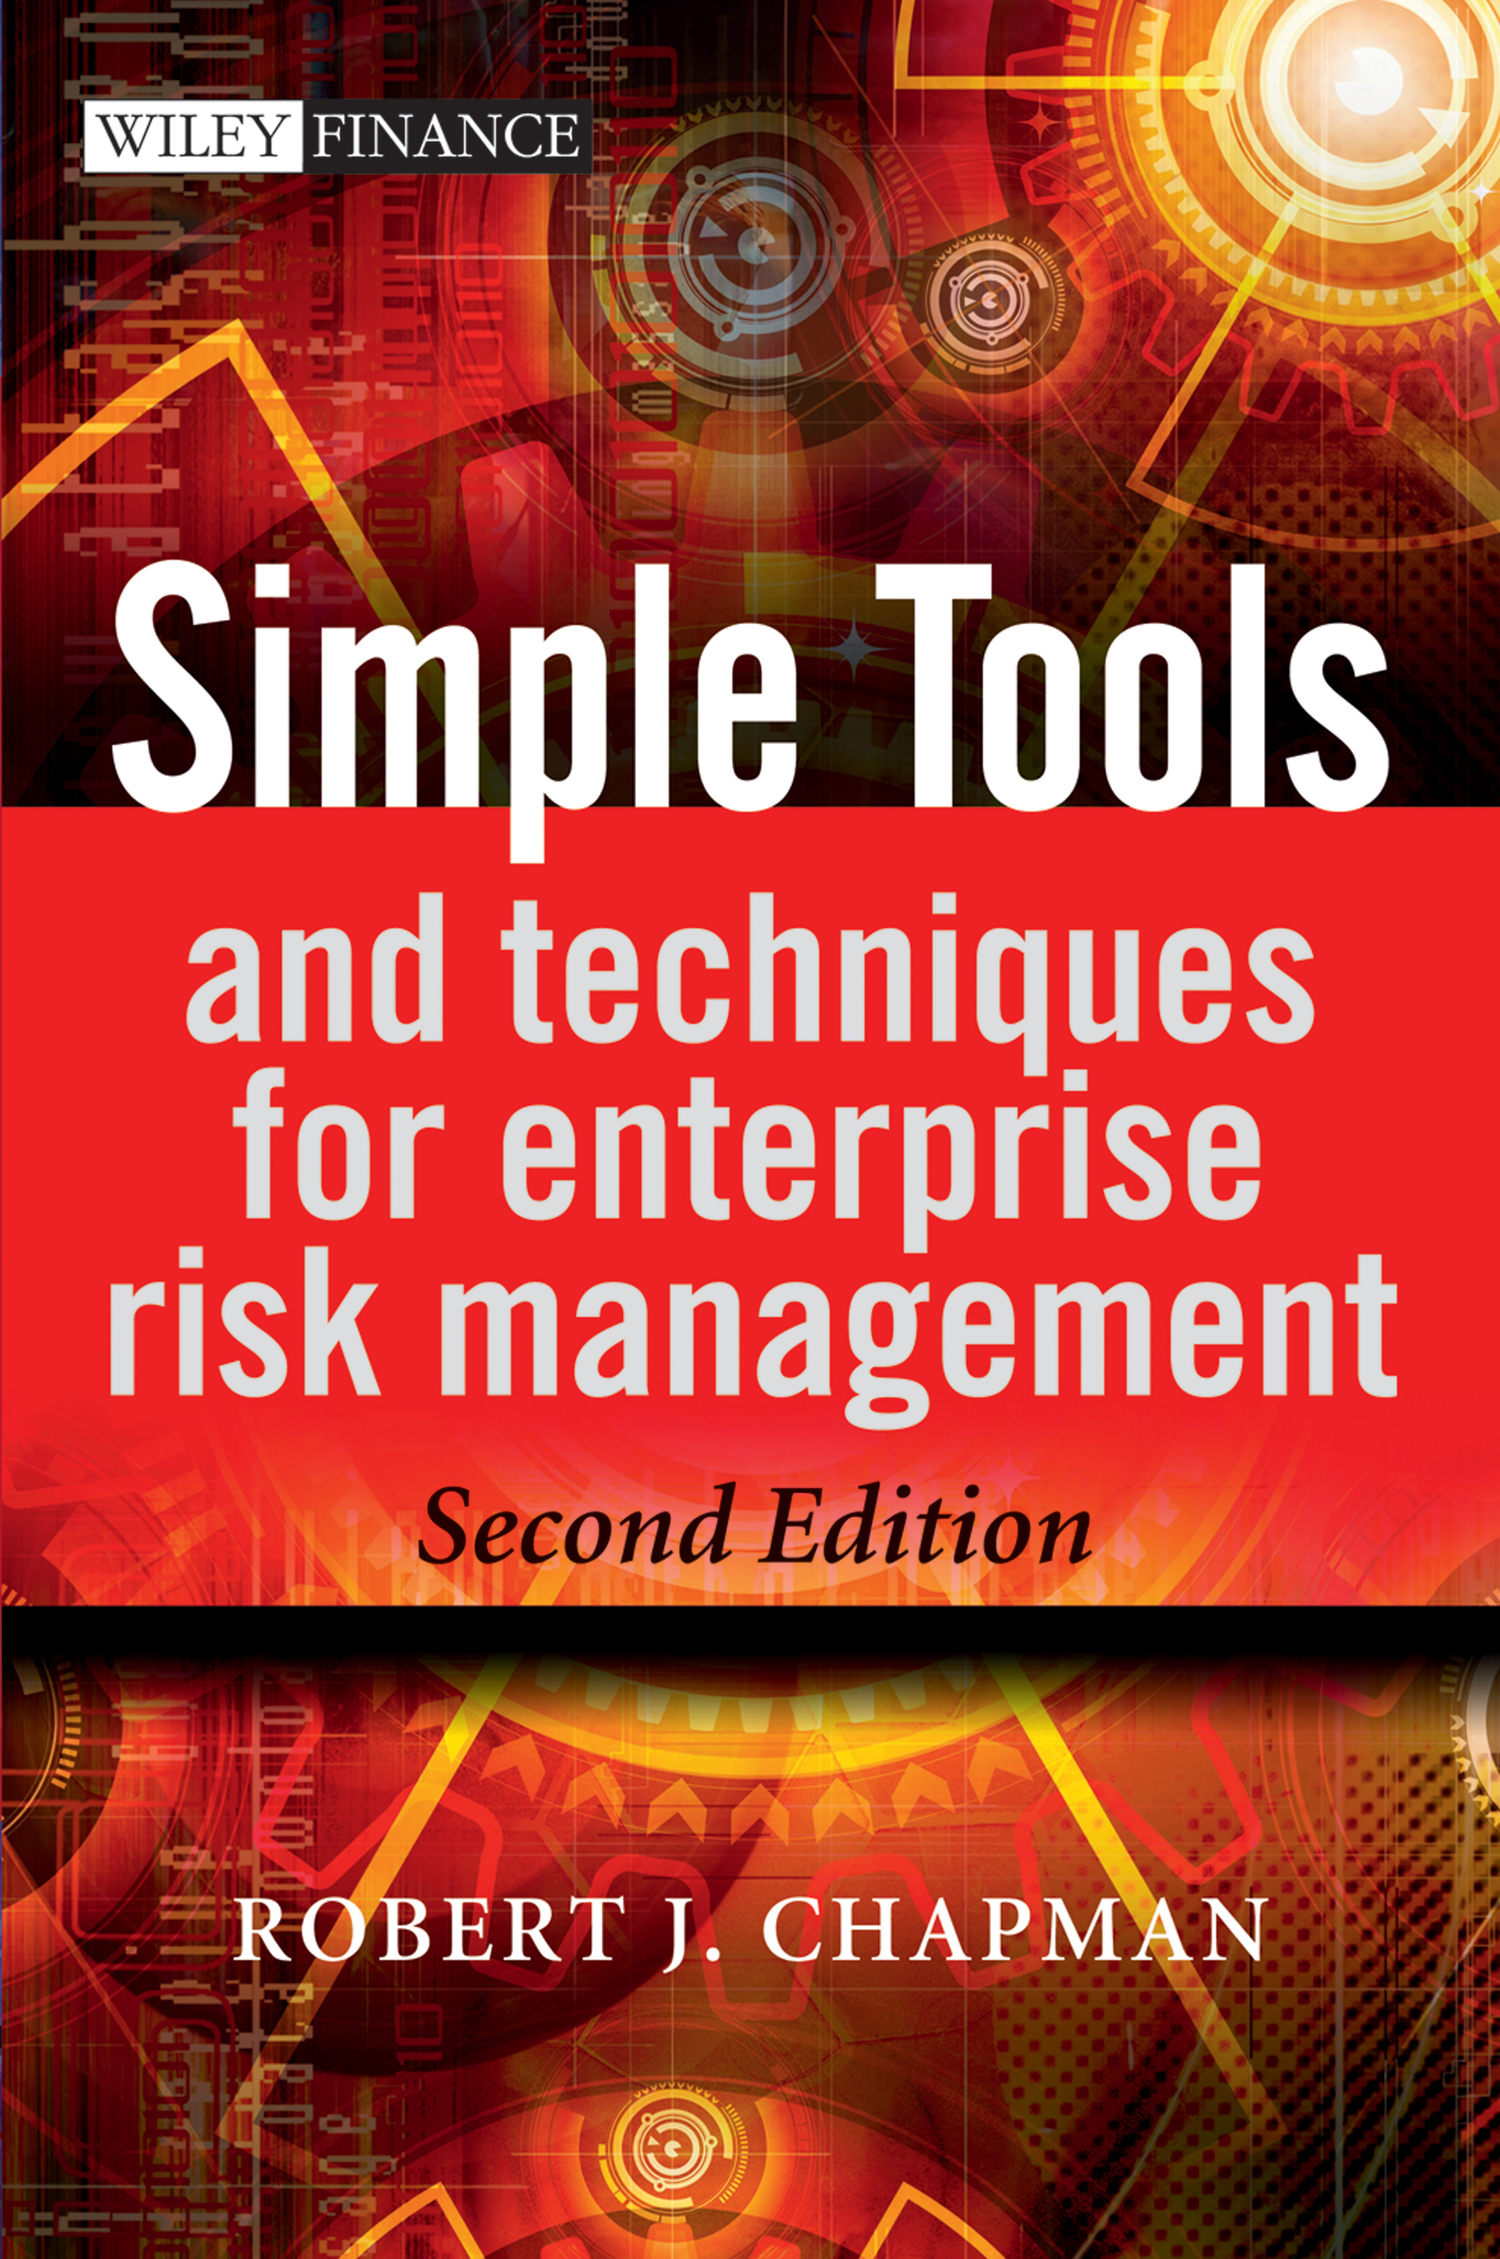 Robert Chapman J. Simple Tools and Techniques for Enterprise Risk Management ISBN: 9781119963219 dave hitz how to castrate a bull unexpected lessons on risk growth and success in business